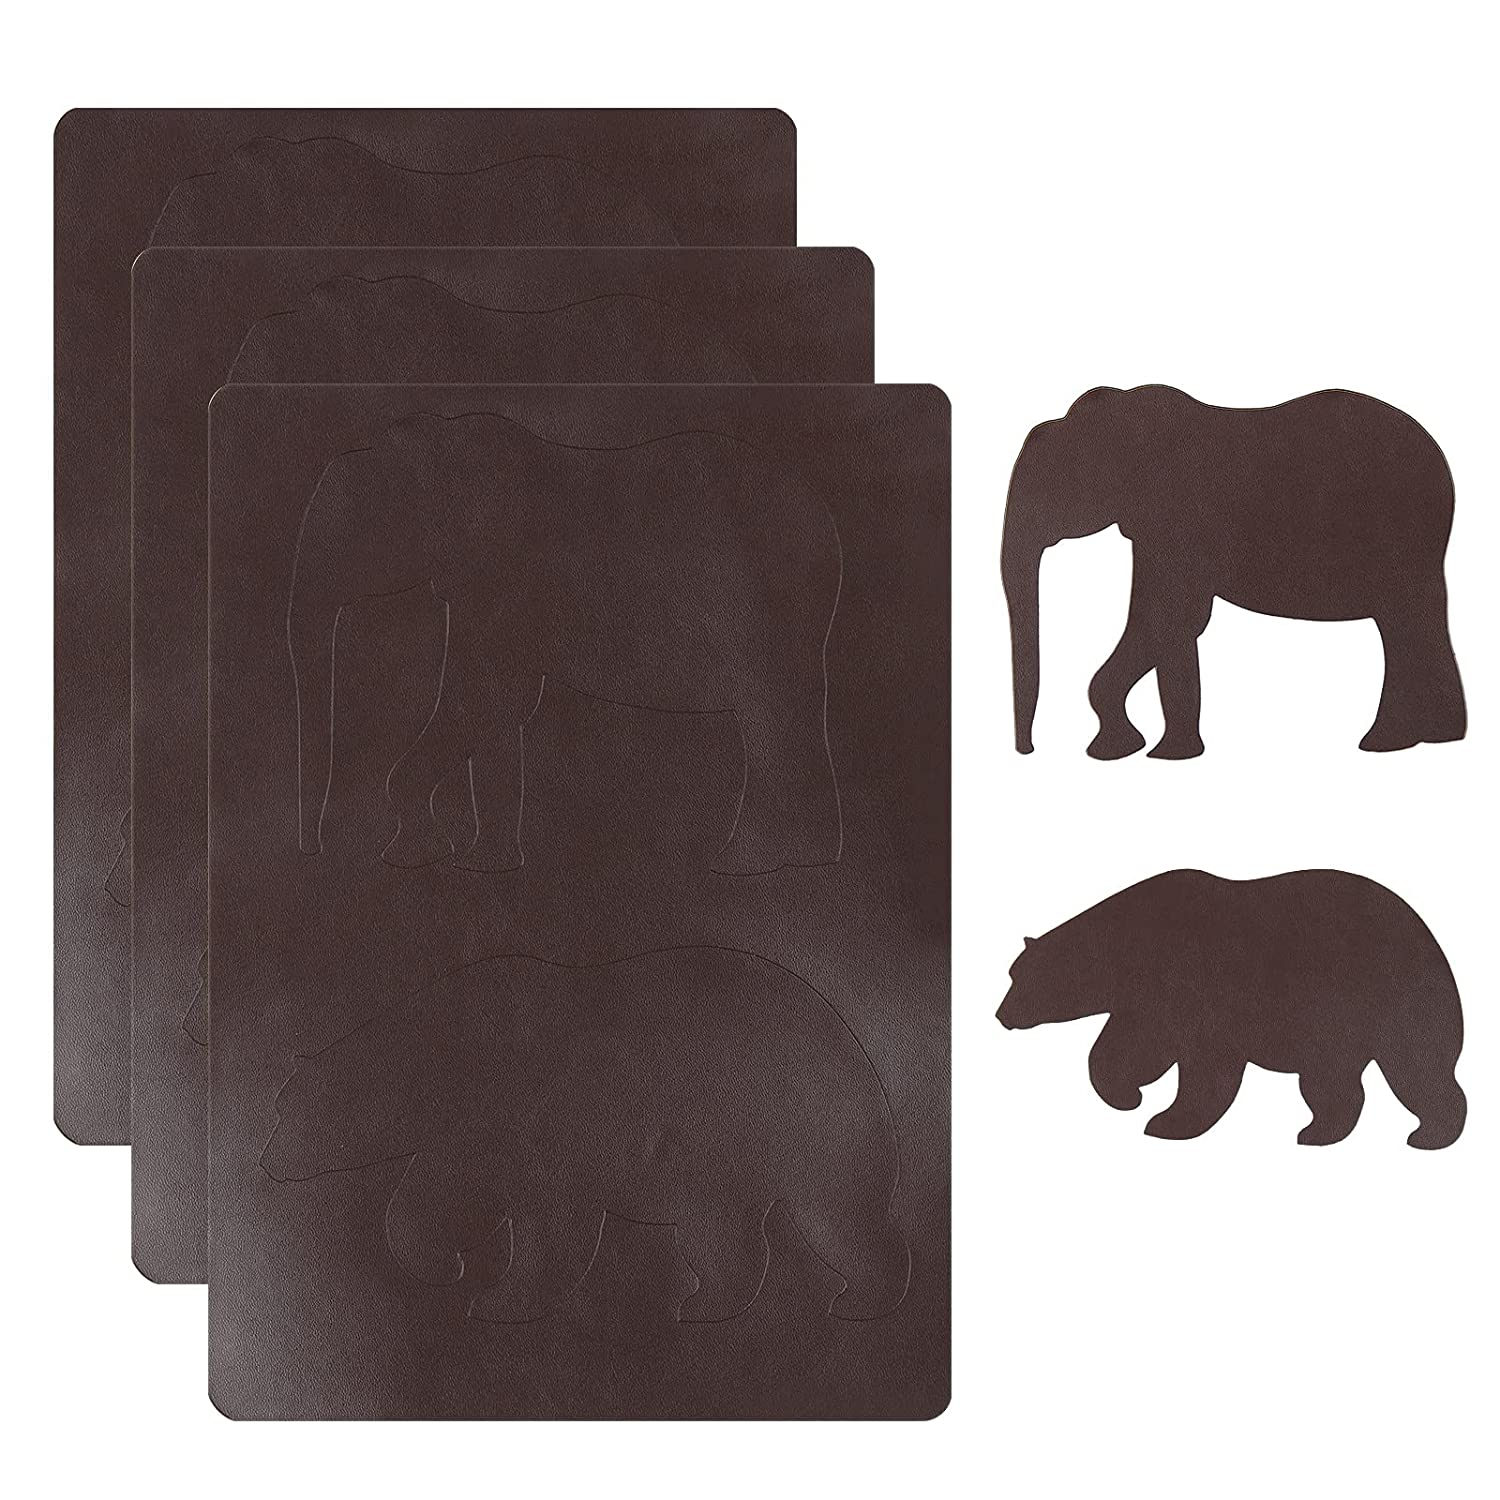 Beautiful Animal Shape Leather Repair Patch Kits, Self Adhesive Waterproof Leather Repair Tape,DIY Leather Patches for Car Seats,Couches,Drivers Seat,Furniture